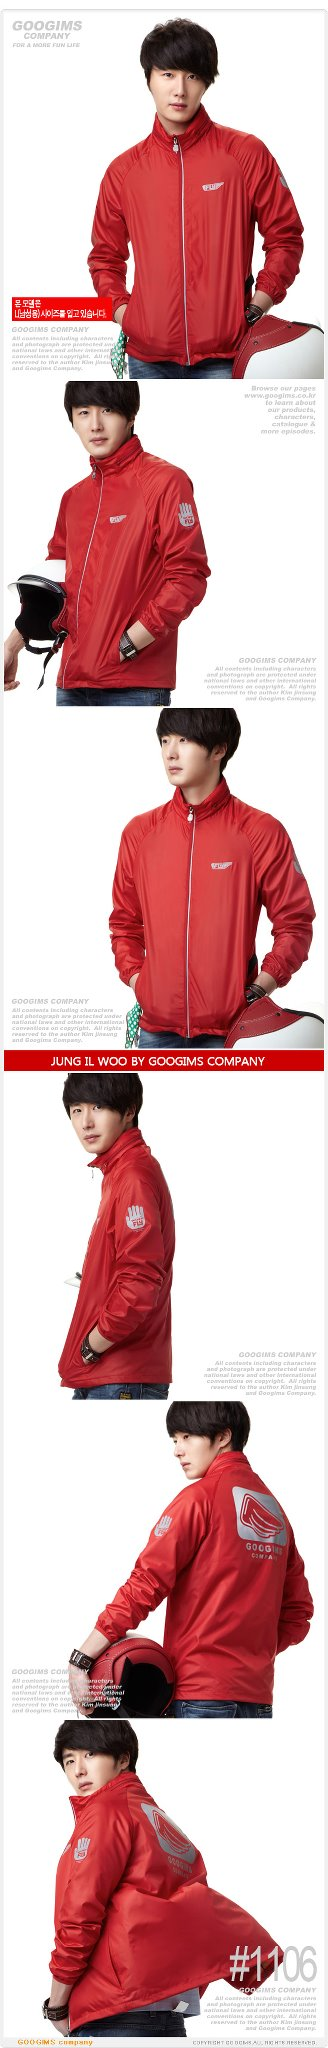 2011 10 Jung II-woo for Googims. Part 100061